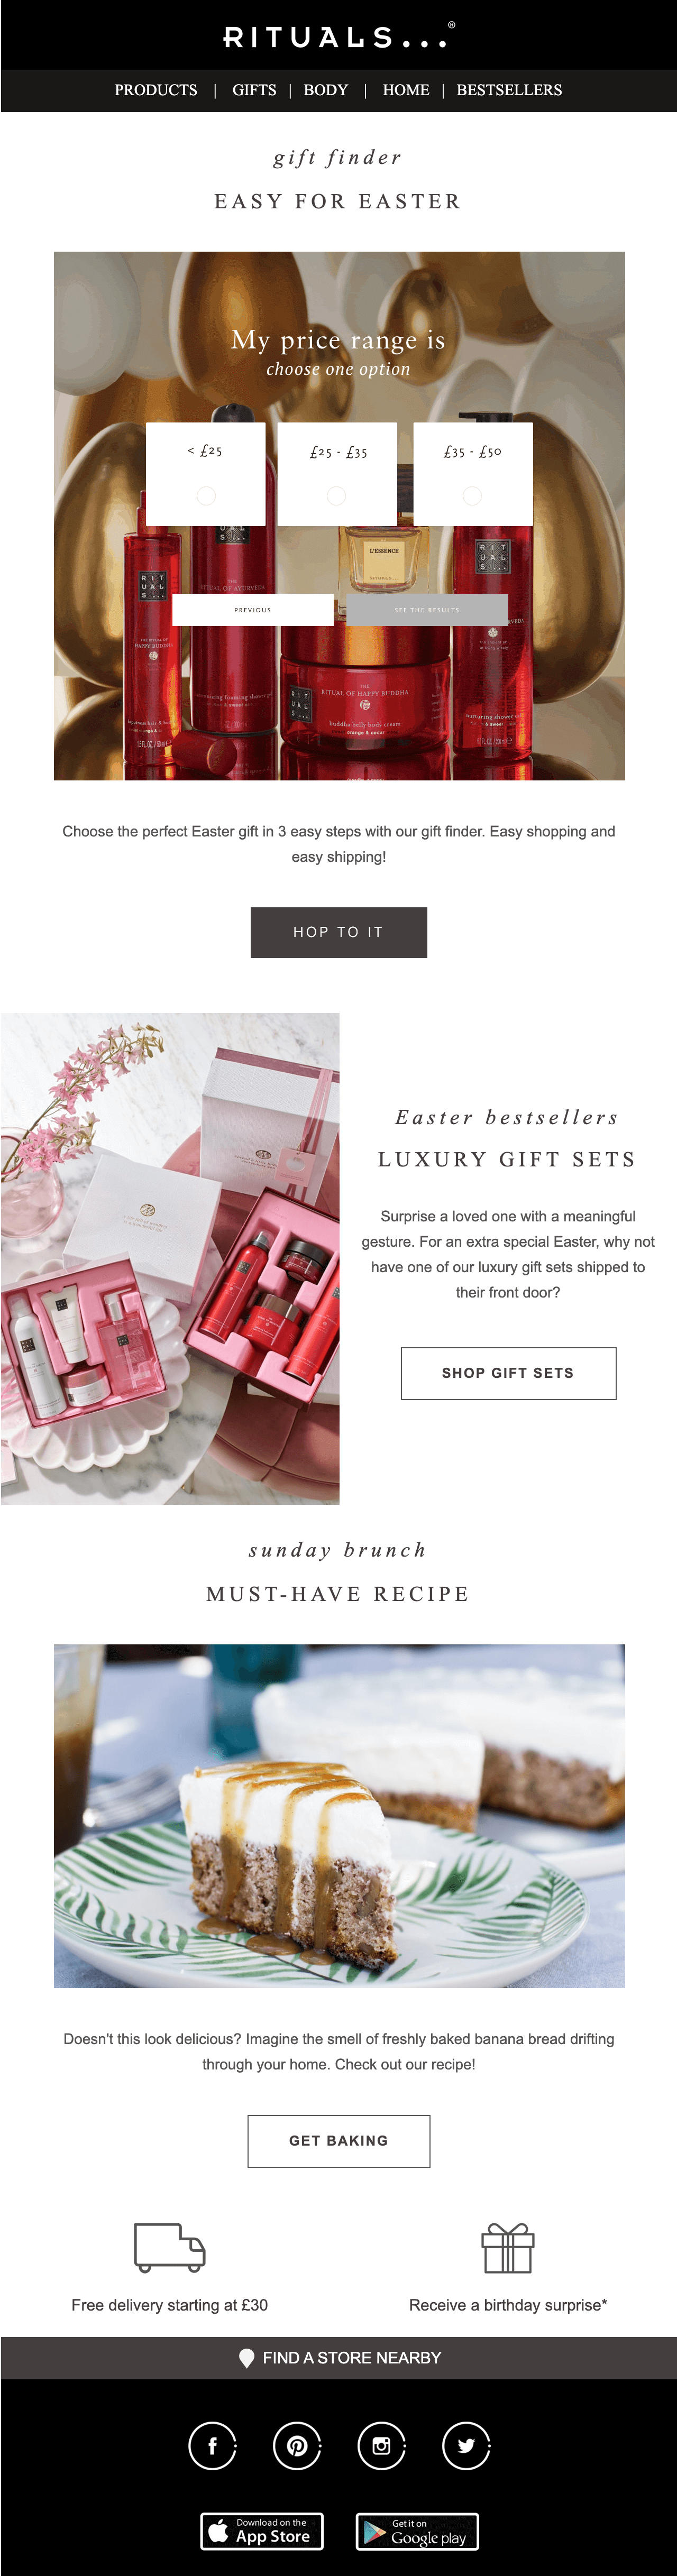 rituals-cosmetics-email-easter